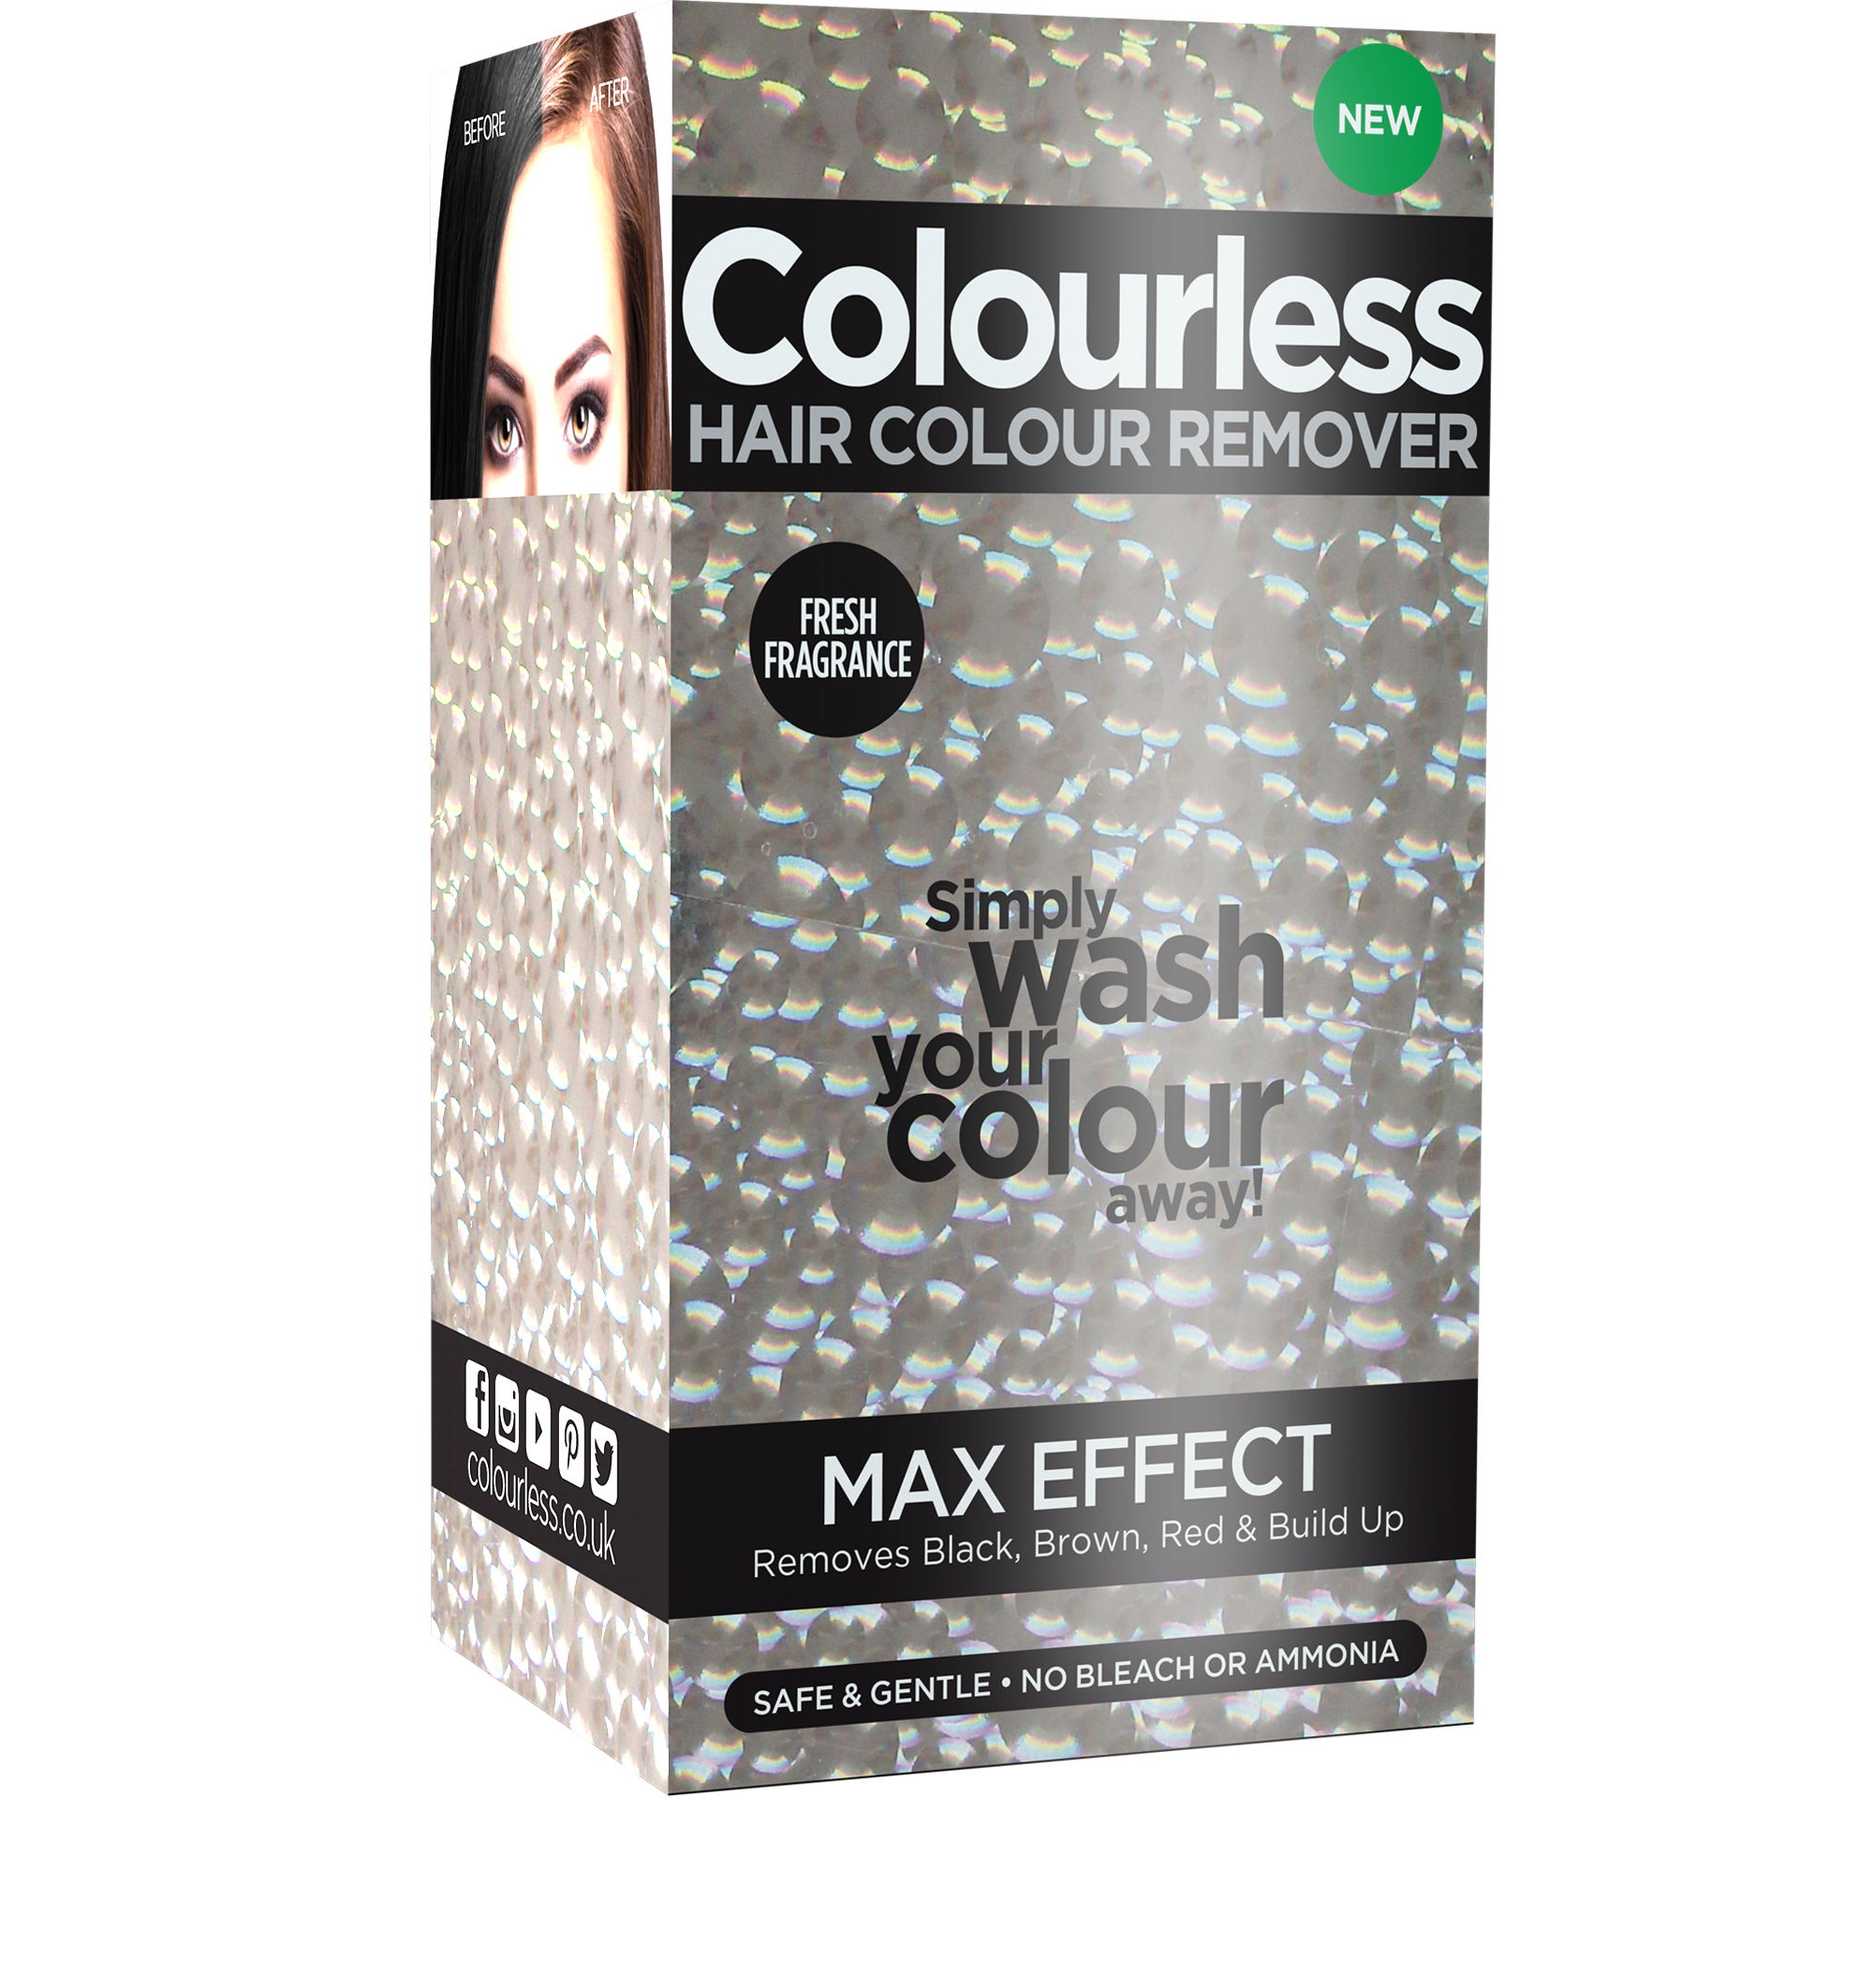 Colourless hair colour remover max effect colourless max effect solutioingenieria Gallery